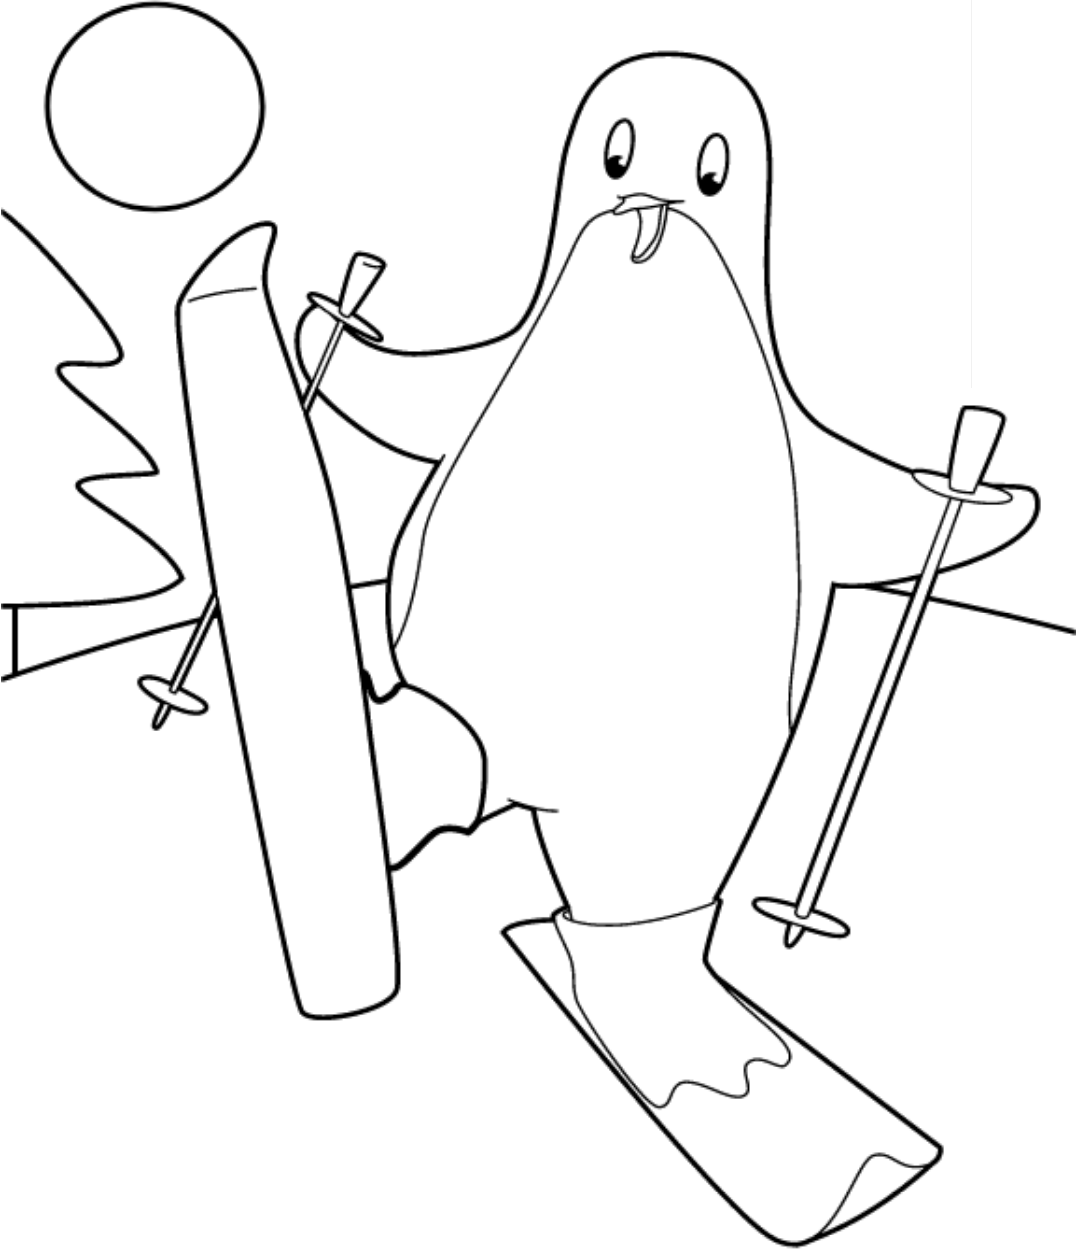 Click to see printable version of Pingüino En Esquiar Coloring page